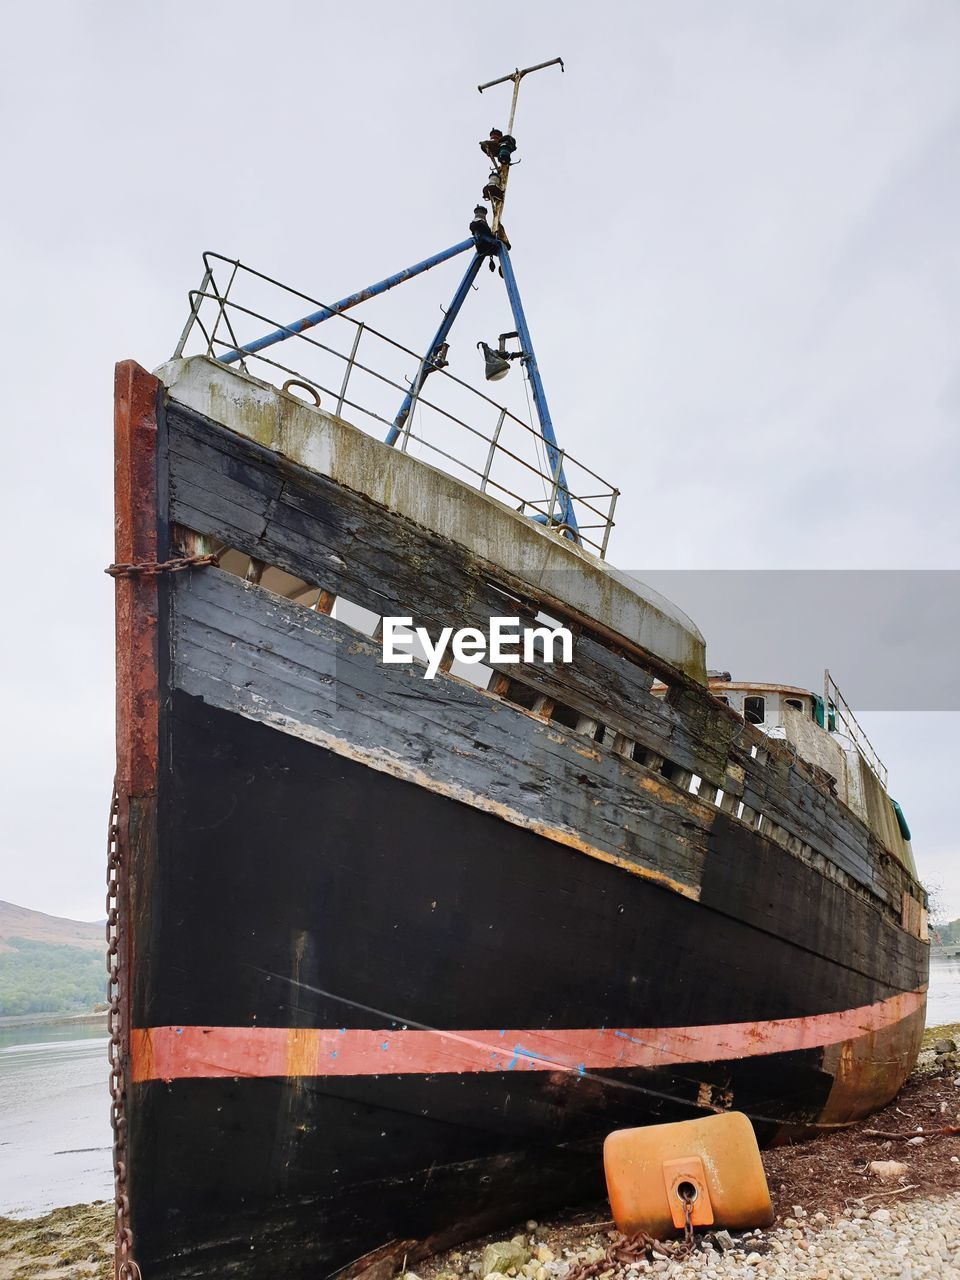 ABANDONED SHIP MOORED IN WATER